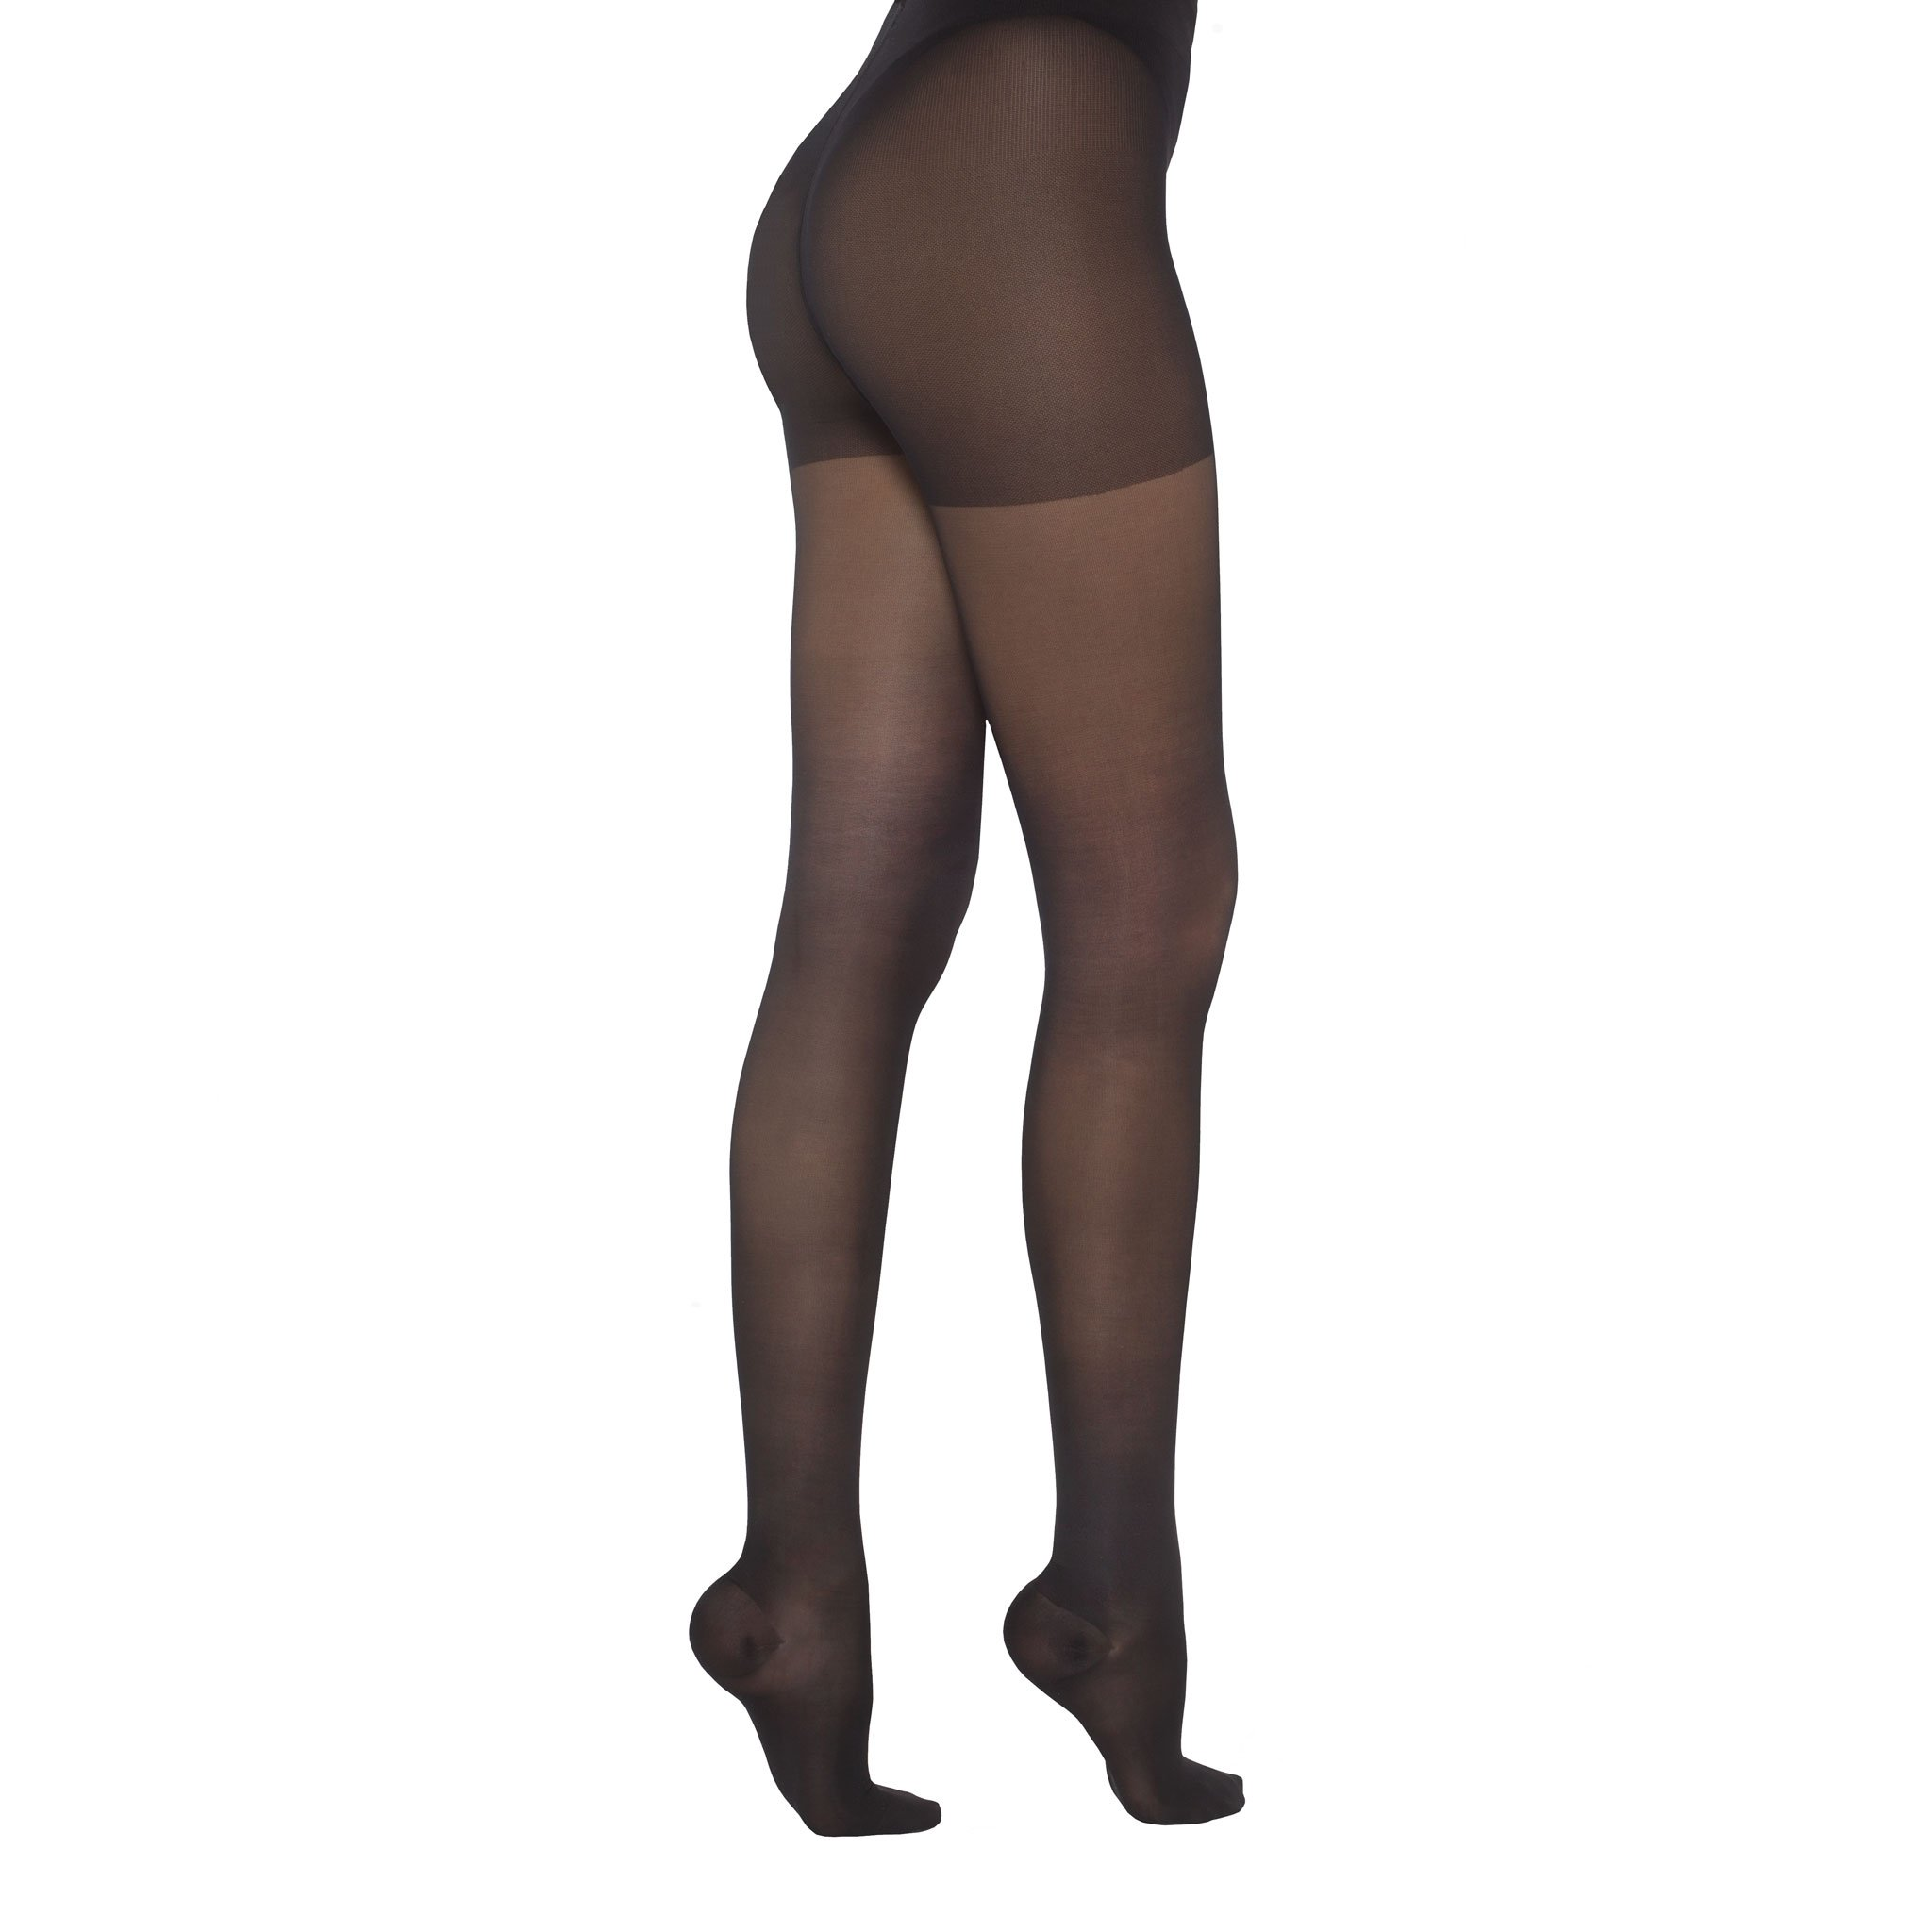 Healthweir Graduated Compression Pantyhose 15-20 mmHg (EU 18-22 mmHg) Class 1 - Made in Italy - Sheer Hosiery Stockings for Everyday Use, Travel, Recovery, Support, Nursing & Pregnancy (5, Black) by Healthweir (Image #1)